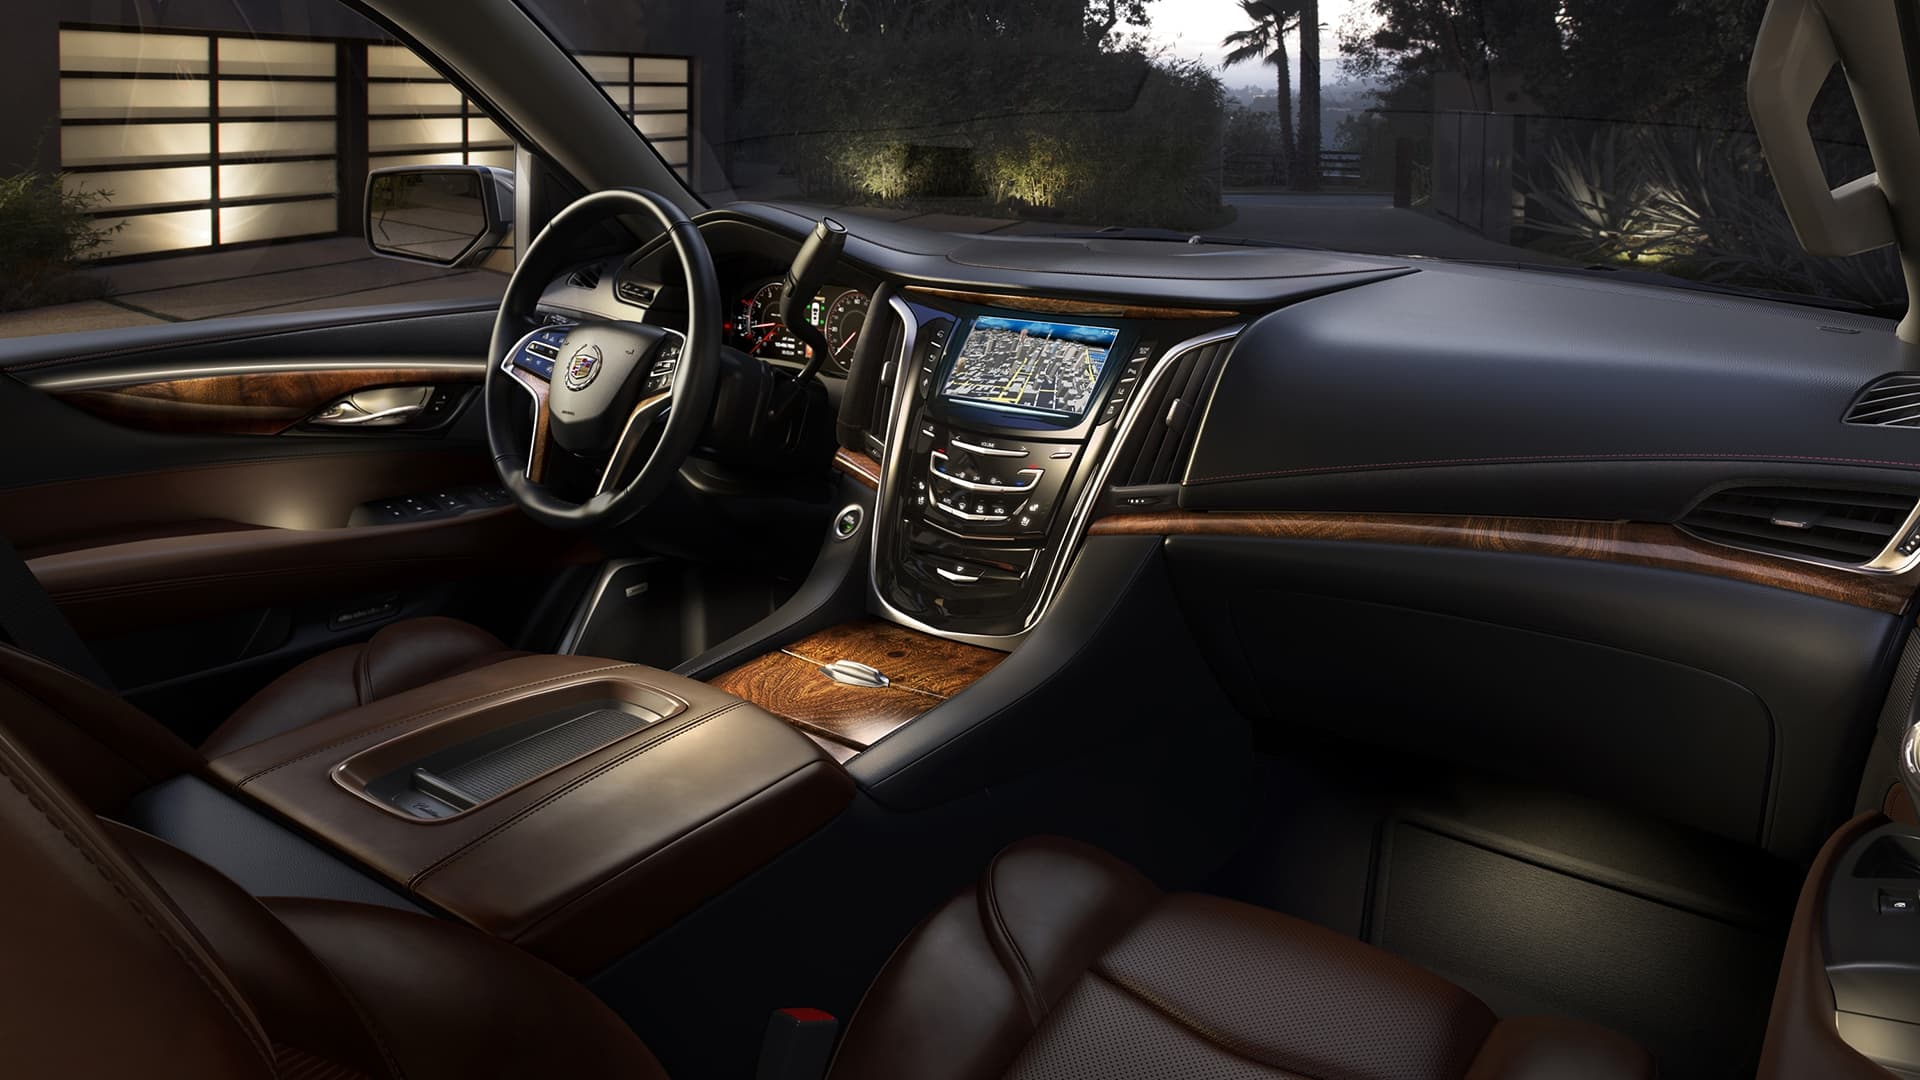 2016 cadillac escalade interior hd wallpaper for pc 20 cadillac escalade wallpapers hd 2015 Escalade Interior at nearapp.co